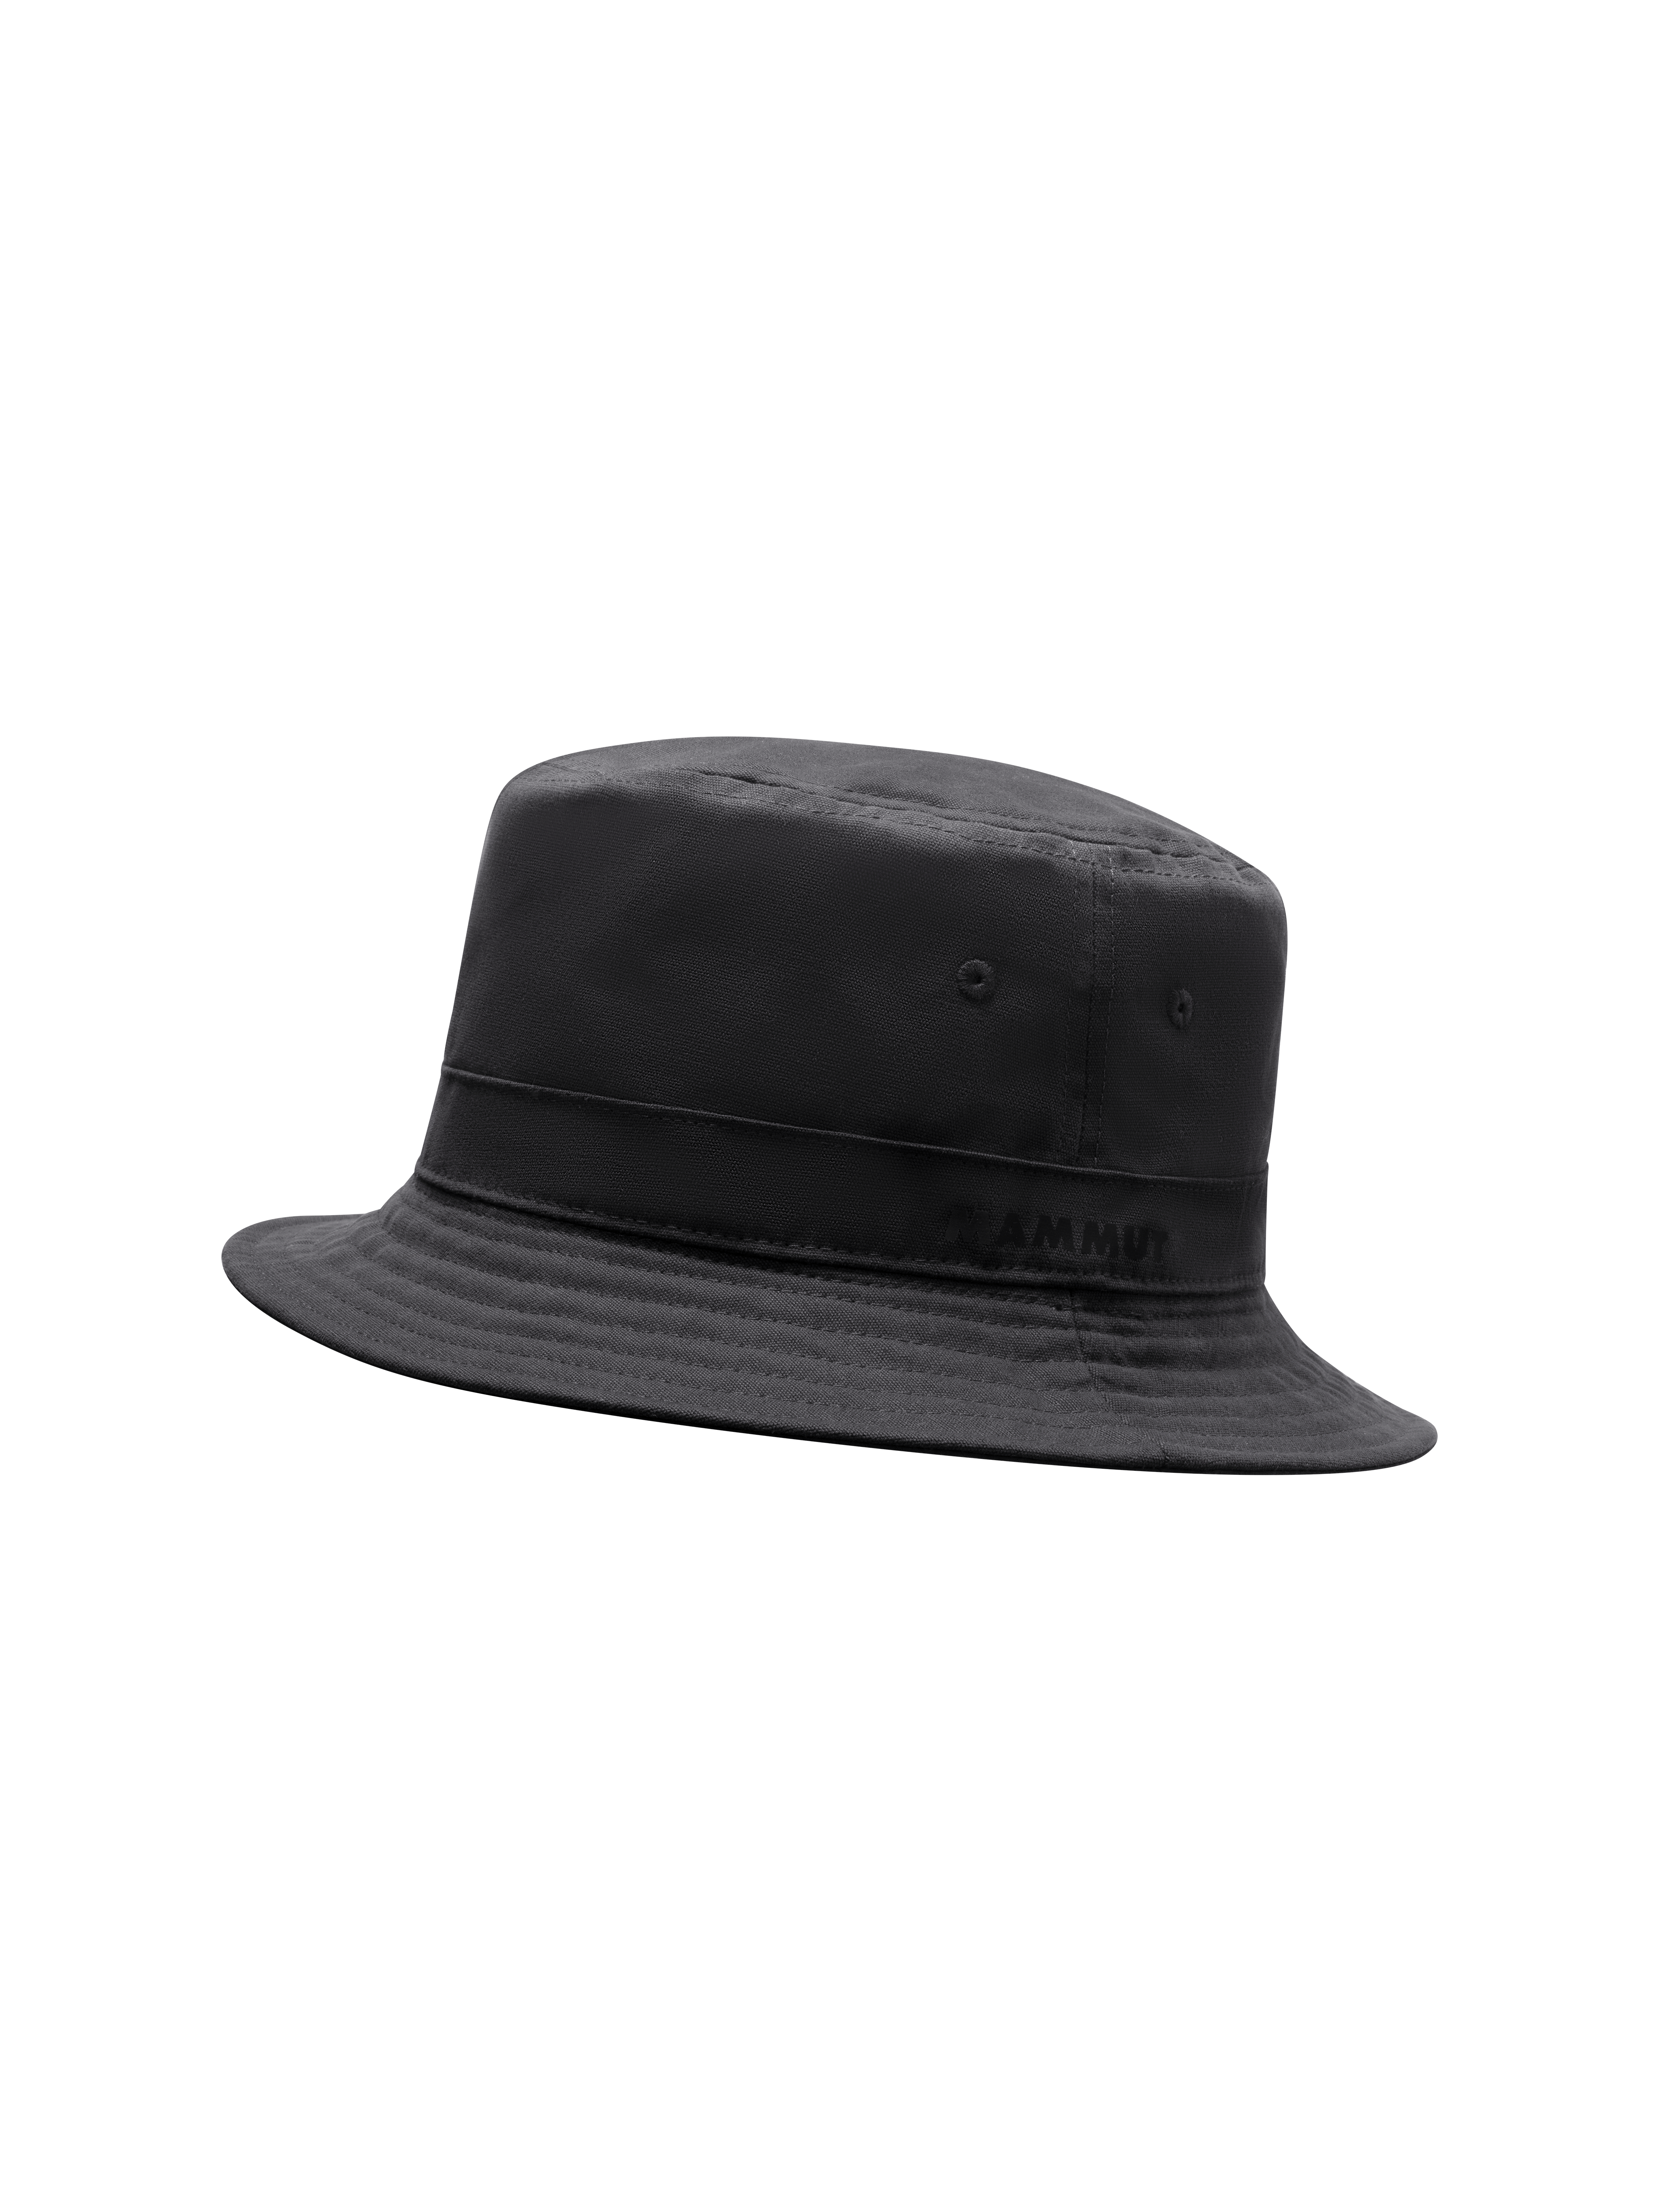 Mammut Bucket Hat product image